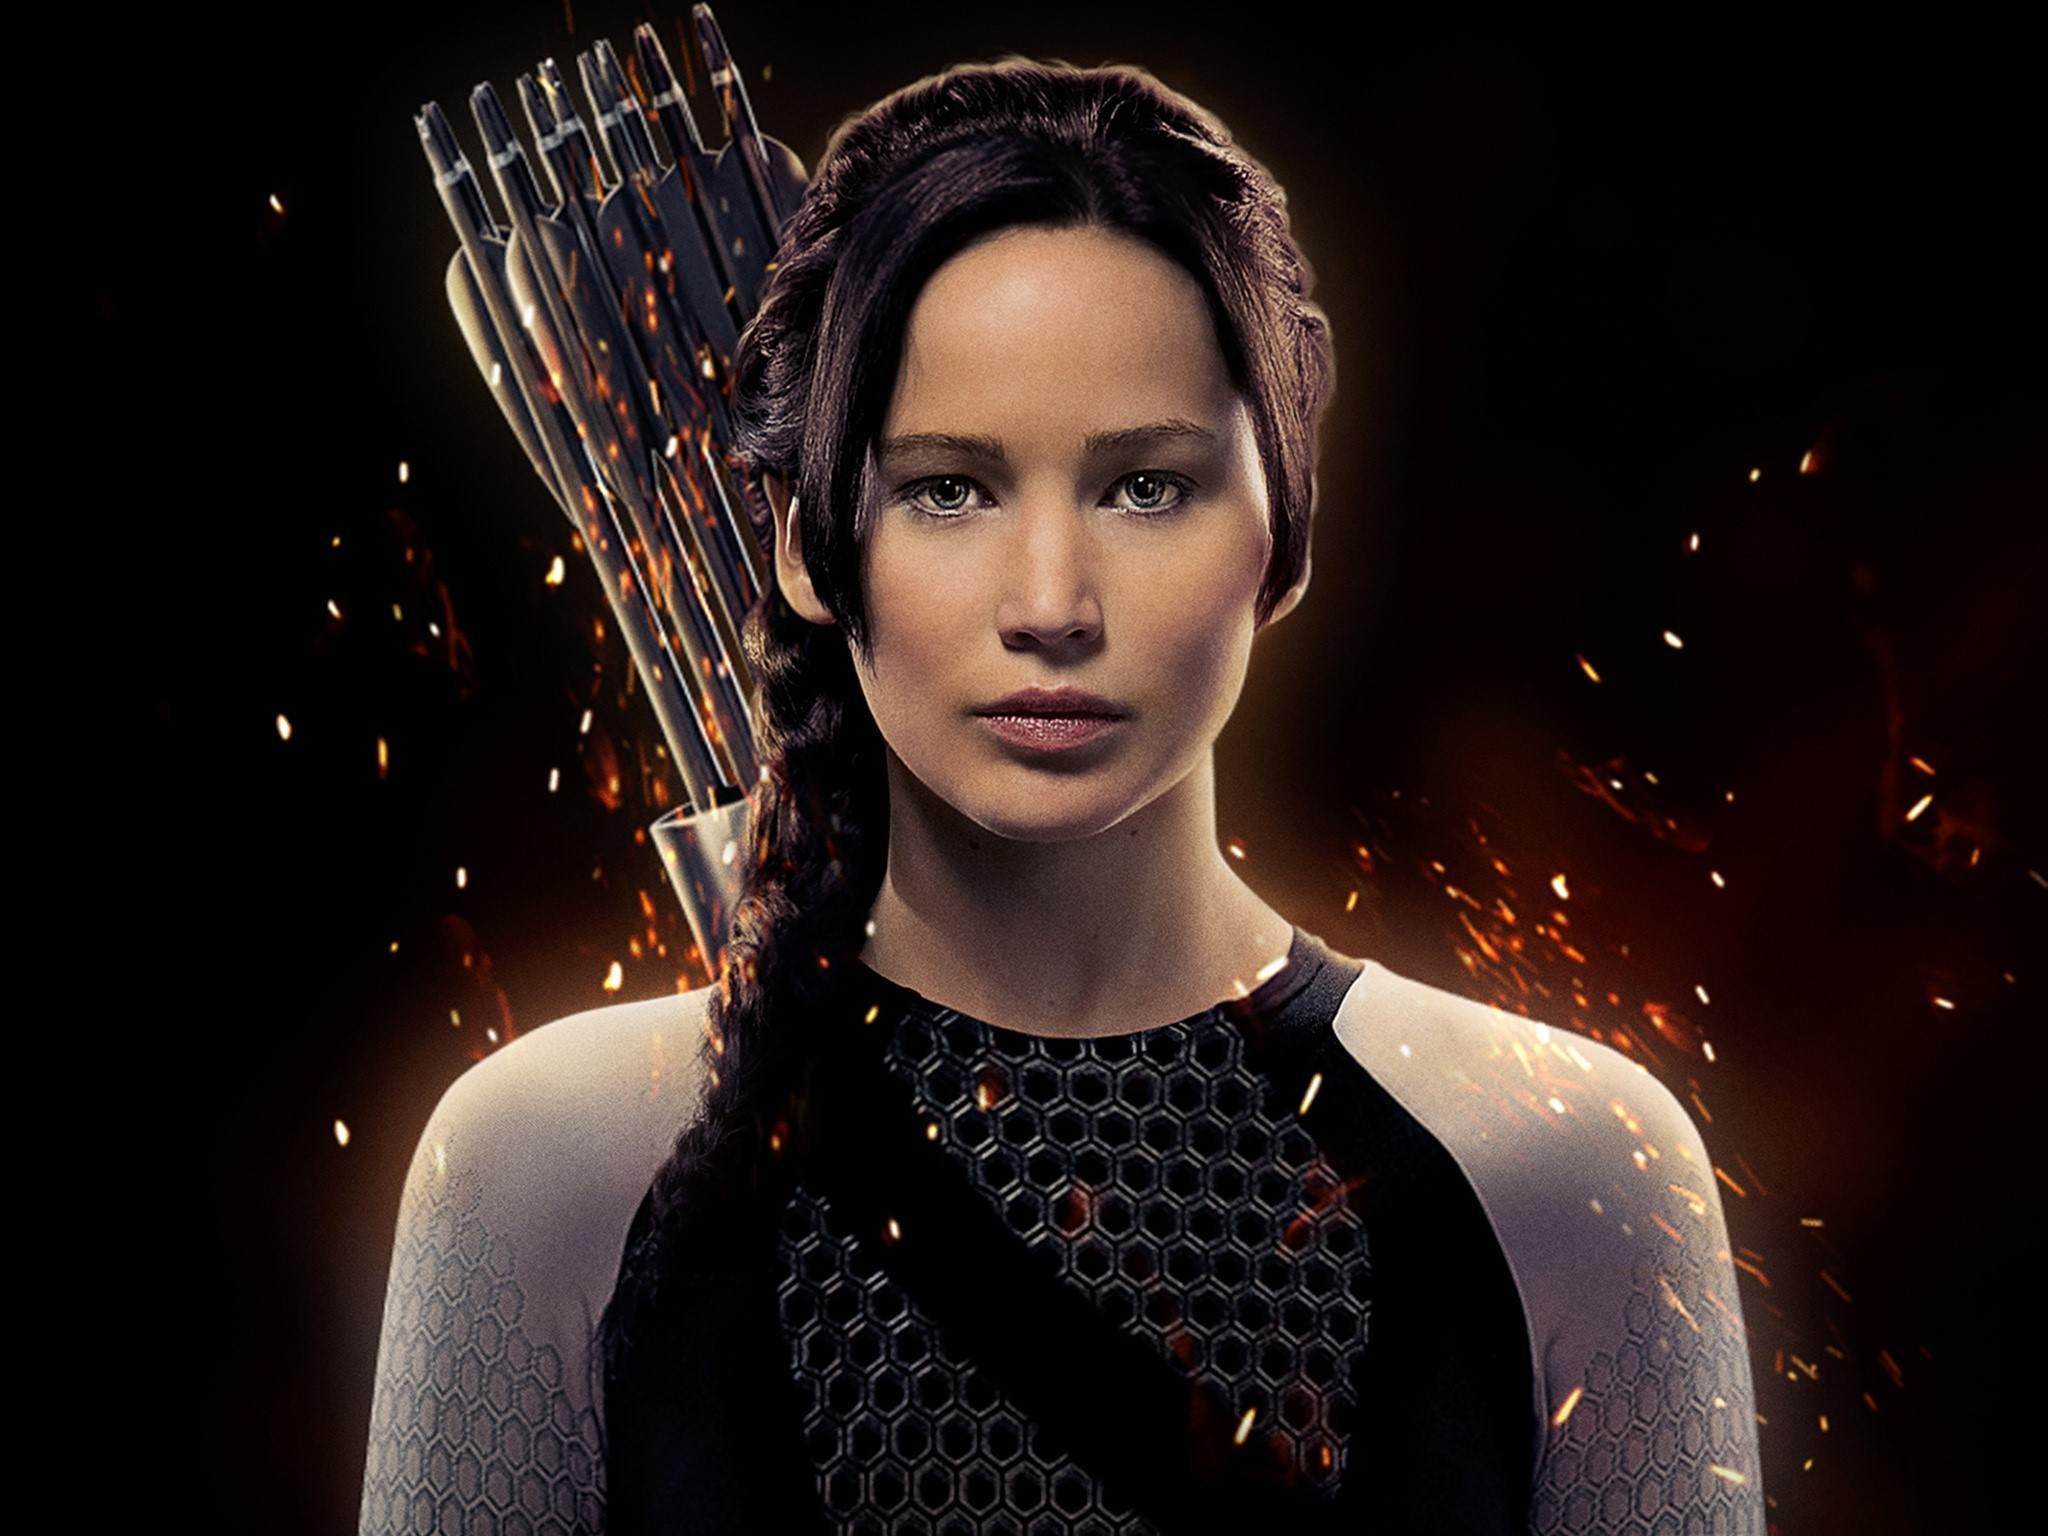 Wallpaper Jennifer Lawrence as Katniss